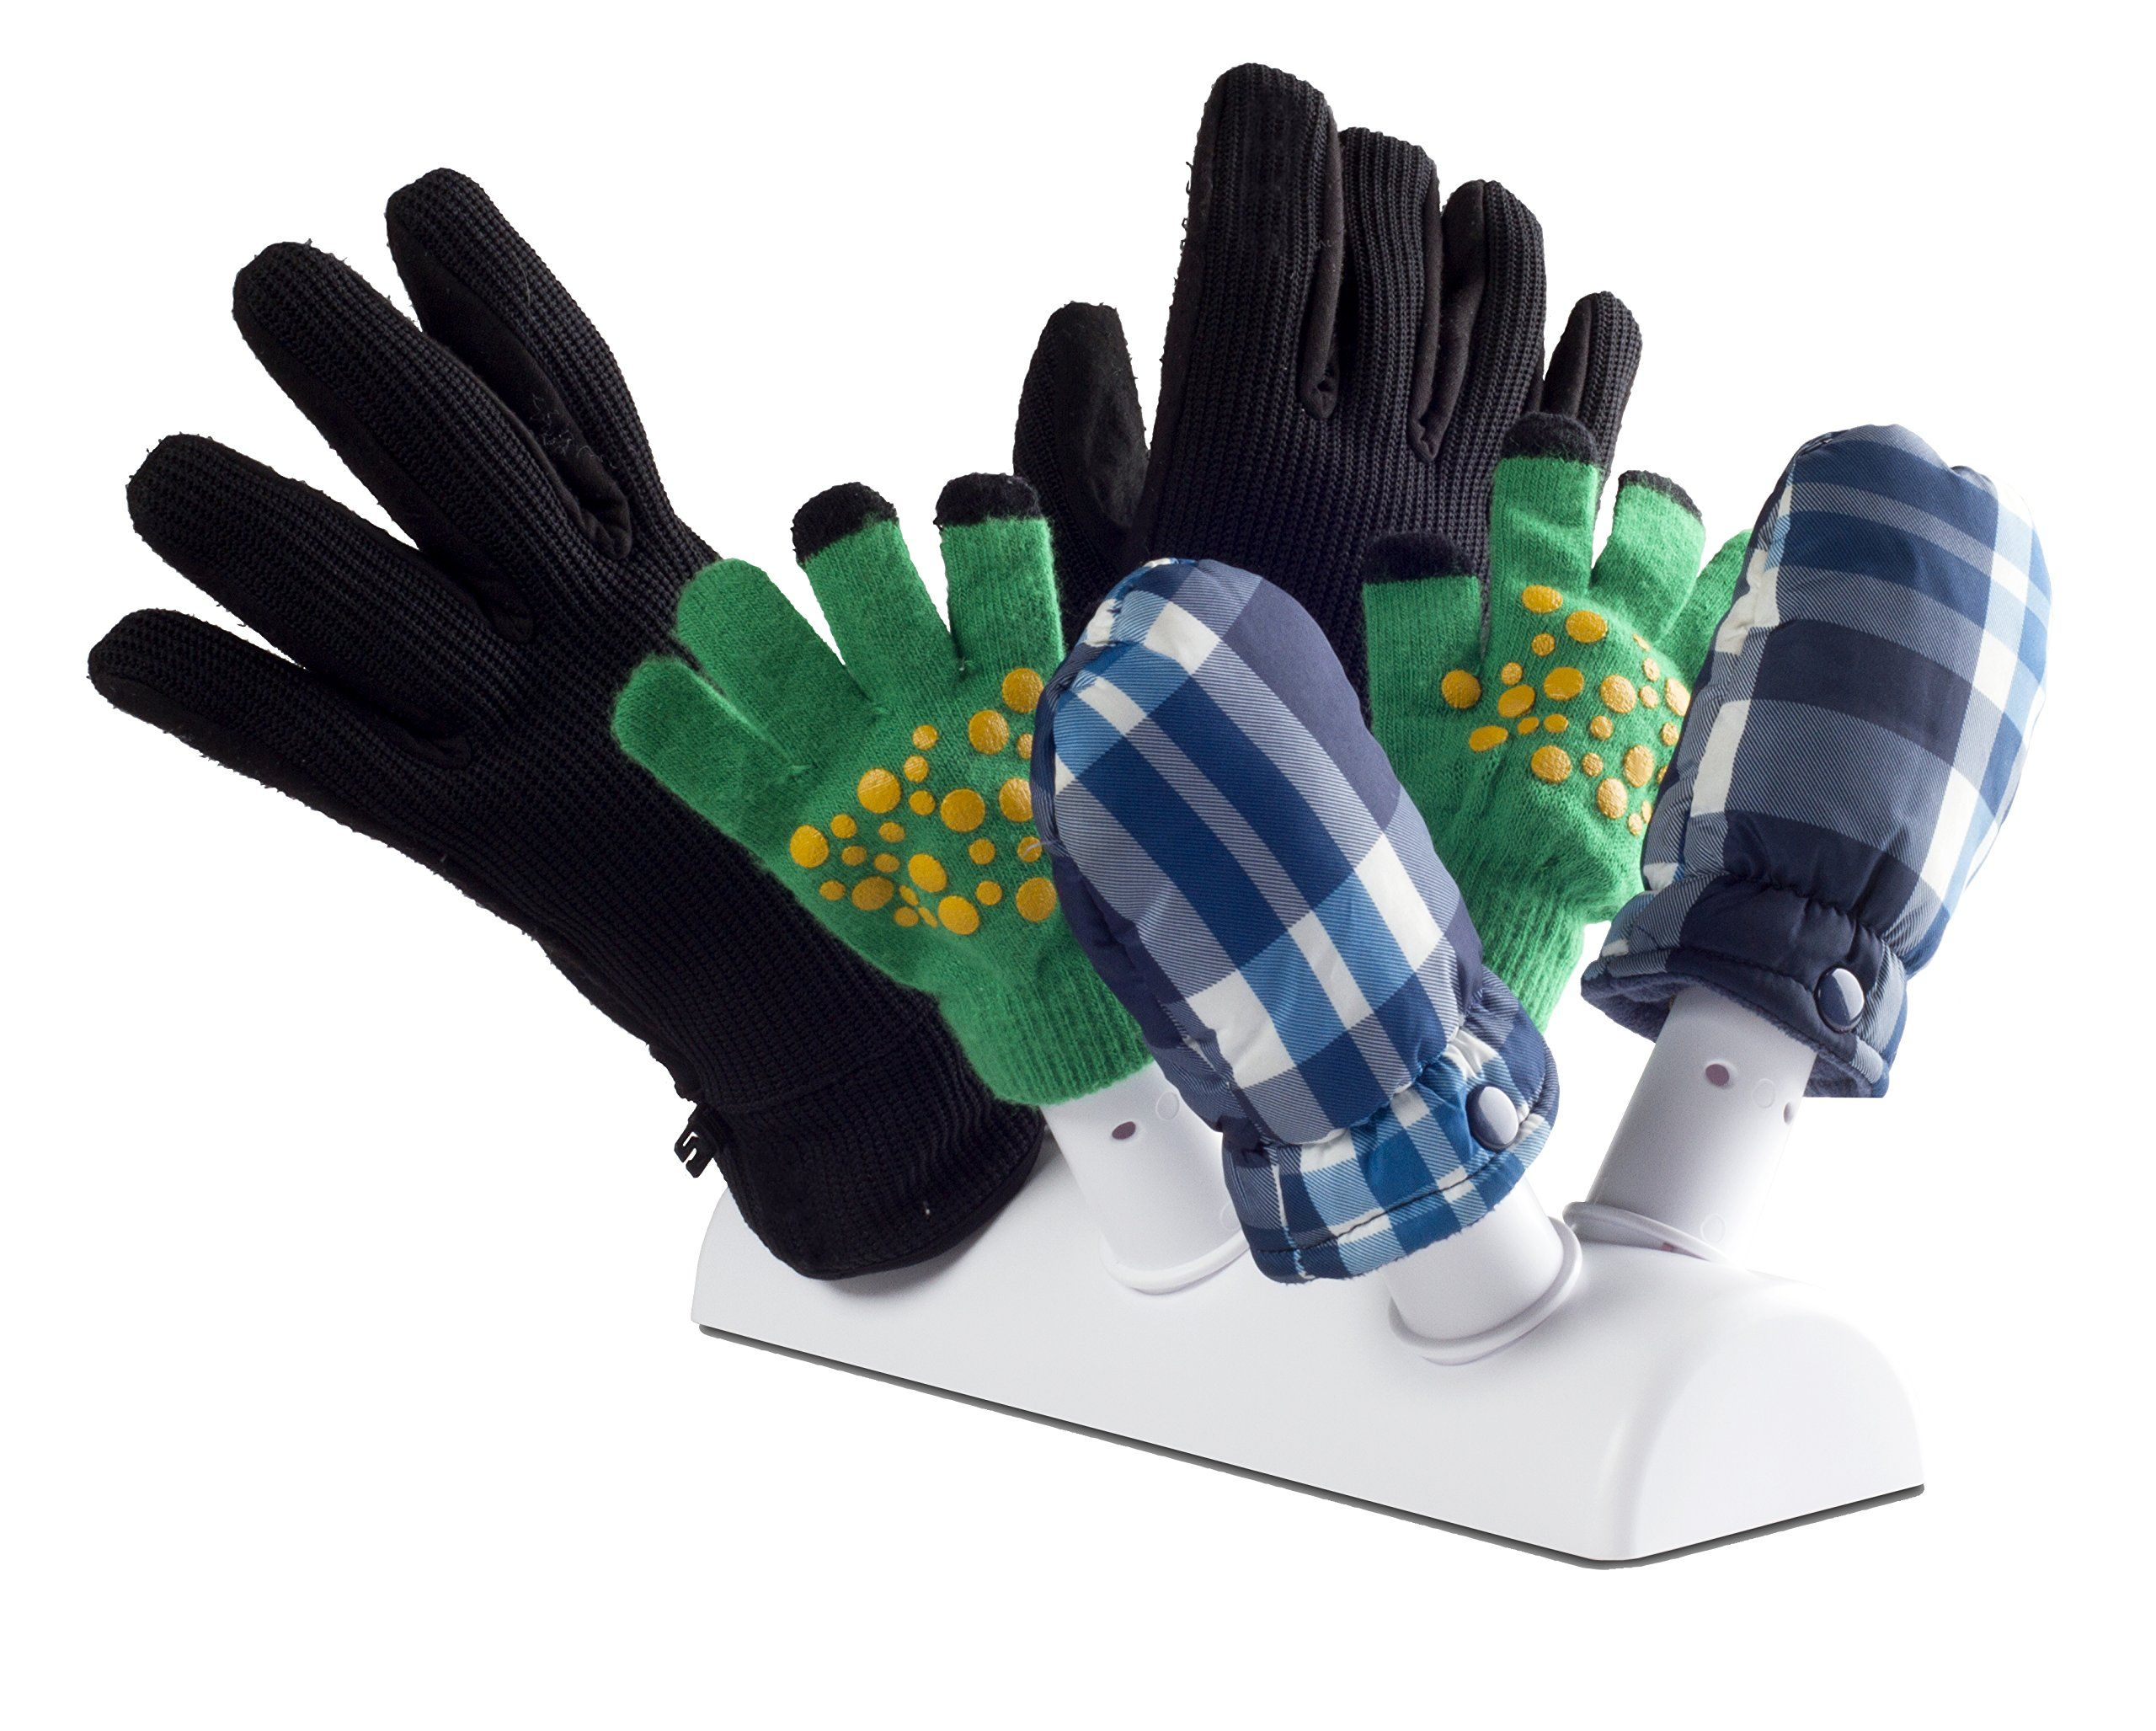 Green Glove Dryer for Hats, Gloves, Shoes and Mittens